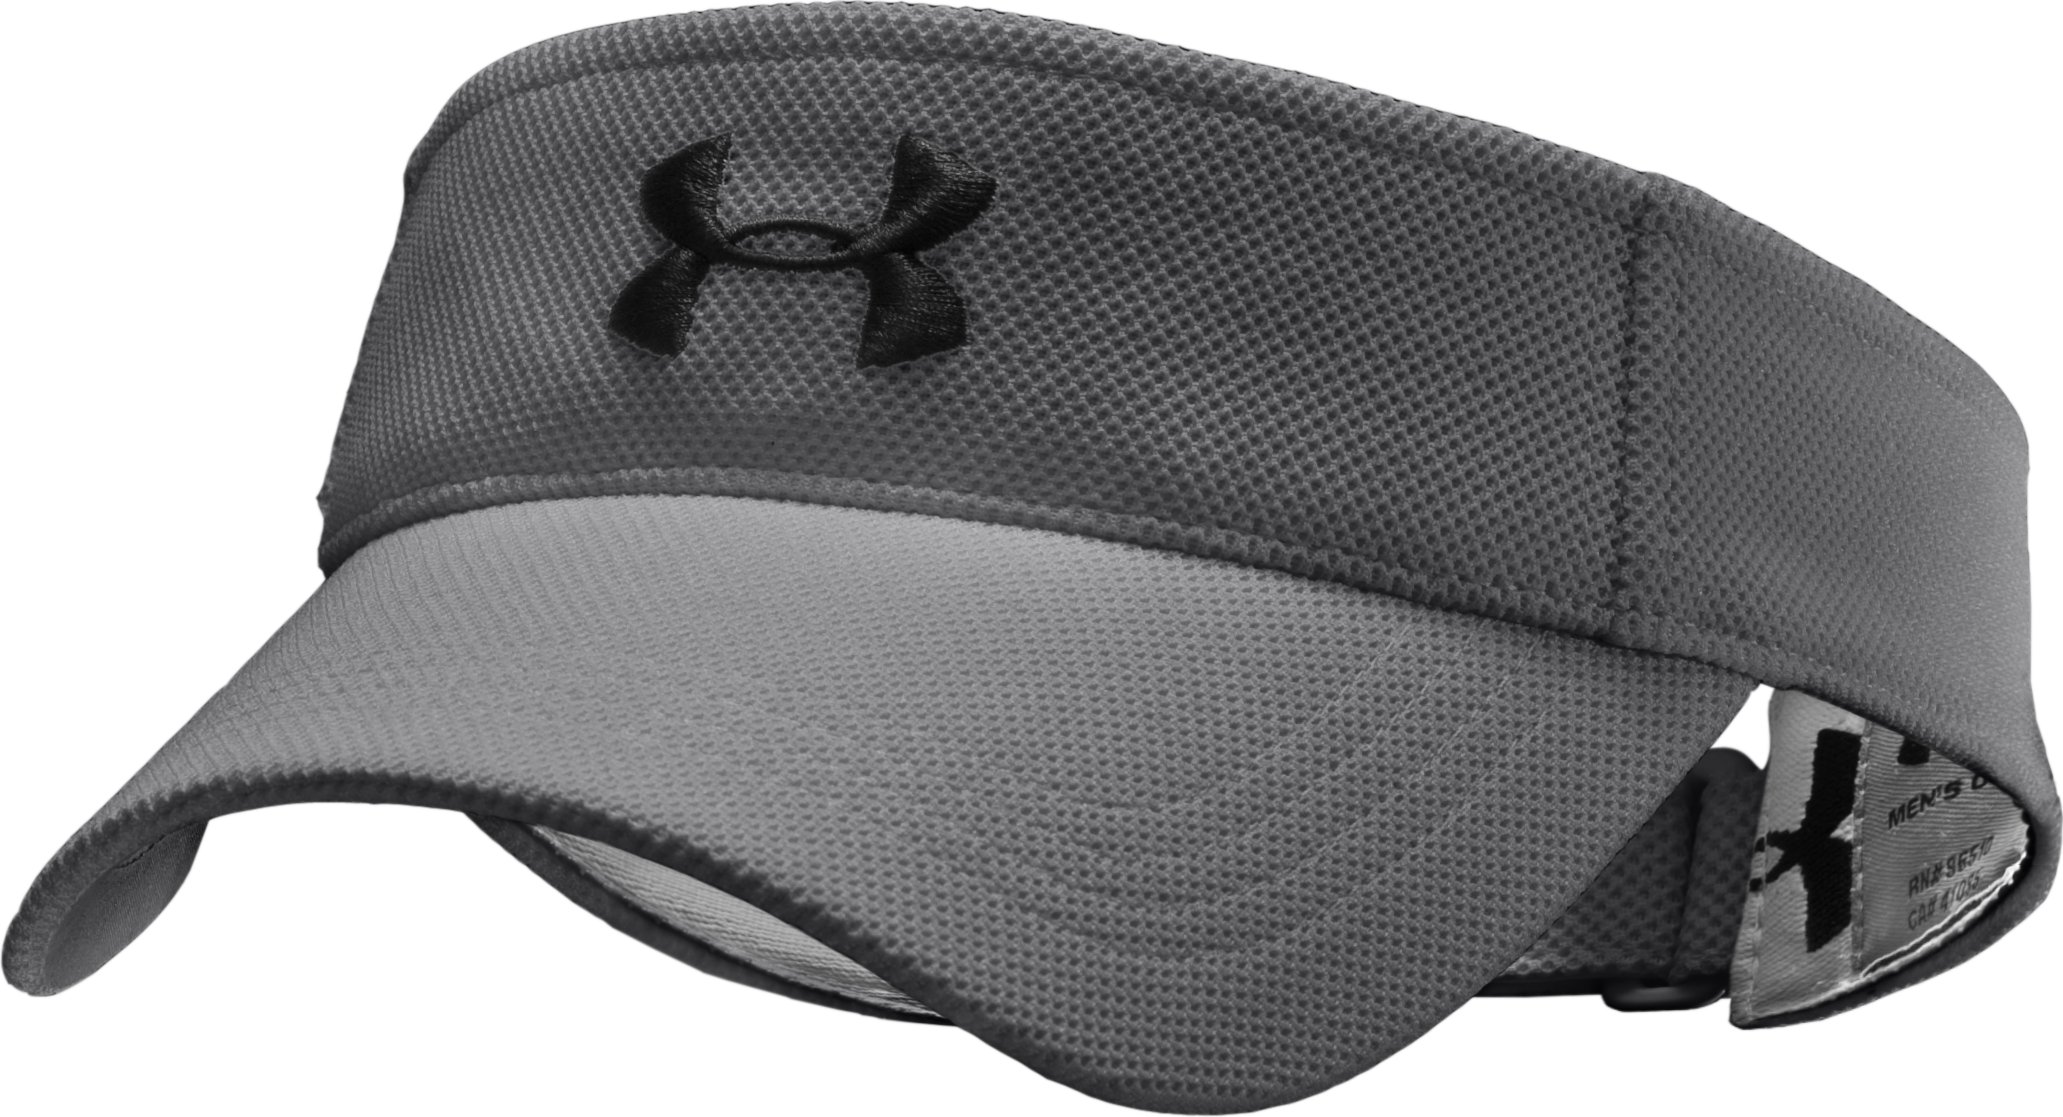 Boys' Audible Adjustable Visor, Graphite